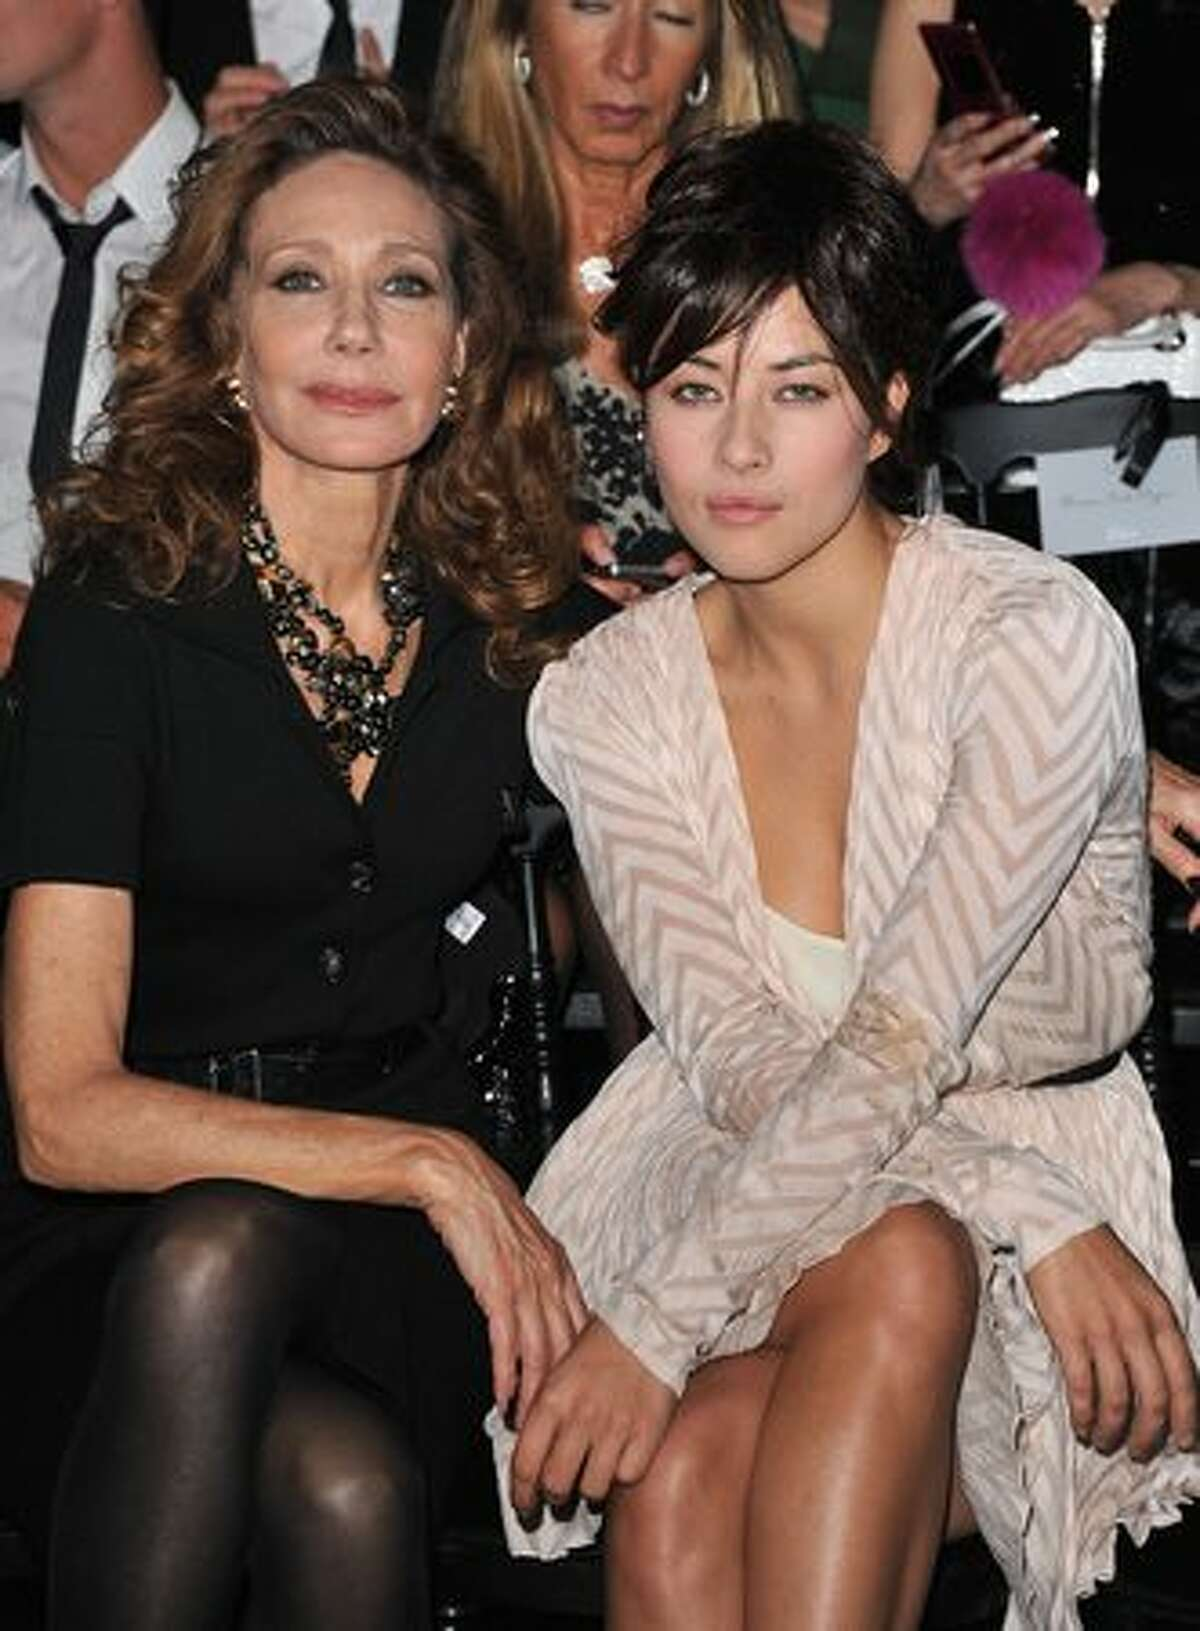 Marisa Berenson and Mylene Jampanoi attend the Christian Dior Ready to Wear Spring/Summer 2011 show during Paris Fashion Week at Espace Ephemere Tuileries in Paris, France.